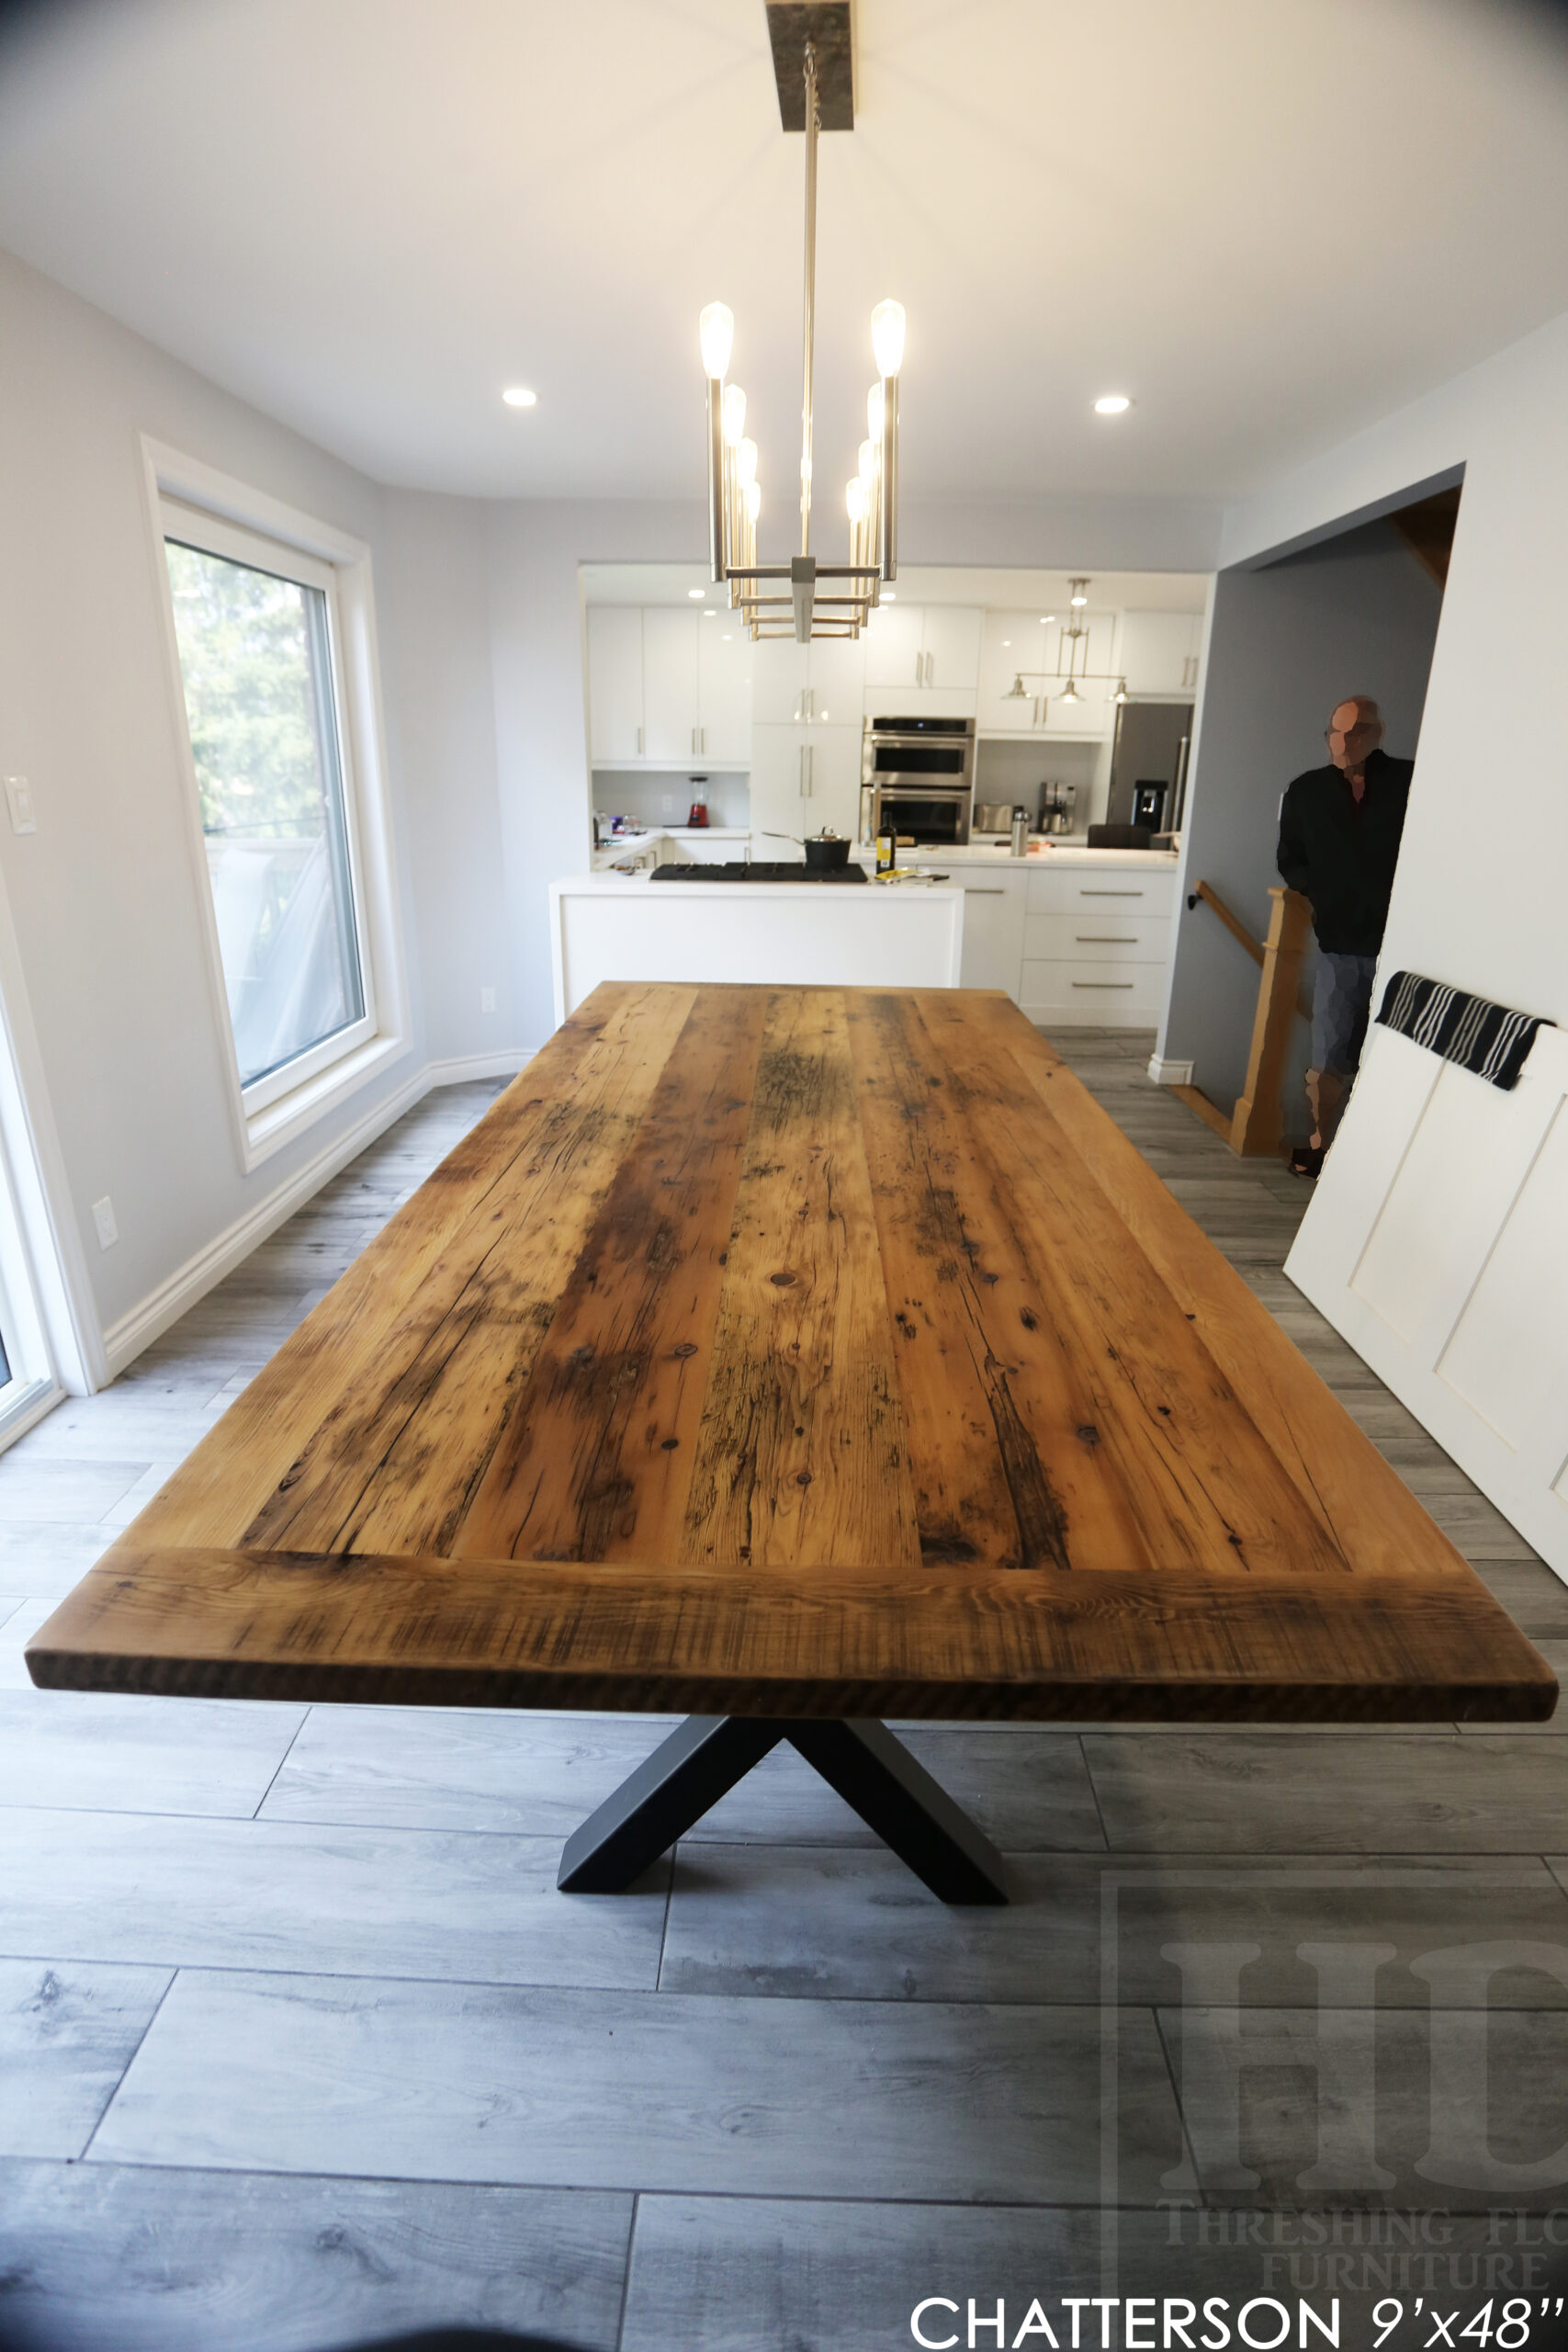 """9' Reclaimed Wood Table for an Ancaster home - 48"""" wide - Hemlock Threshing Floor 2"""" Barnwood Top - Black X Shaped Metal Base - Original edges & distressing maintained - Premium epoxy + matte polyurethane finish - Greytone Treatment Option to maintain colour of unfinished - www.table.ca"""